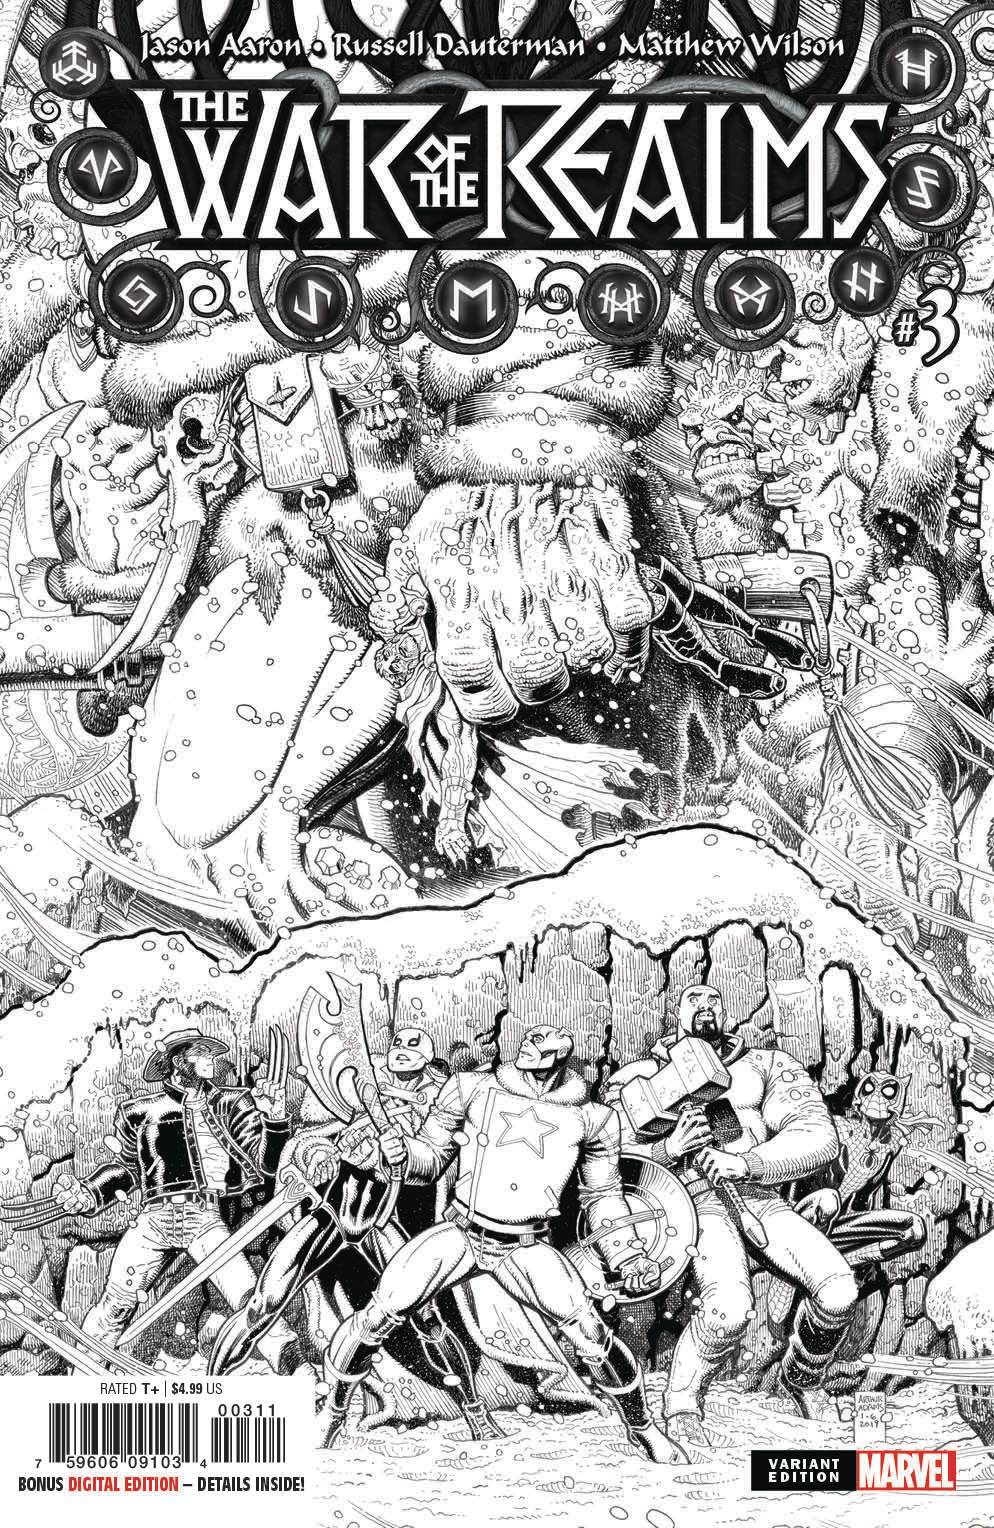 WAR OF REALMS #3 (OF 6) ART ADAMS B&W VAR.jpg